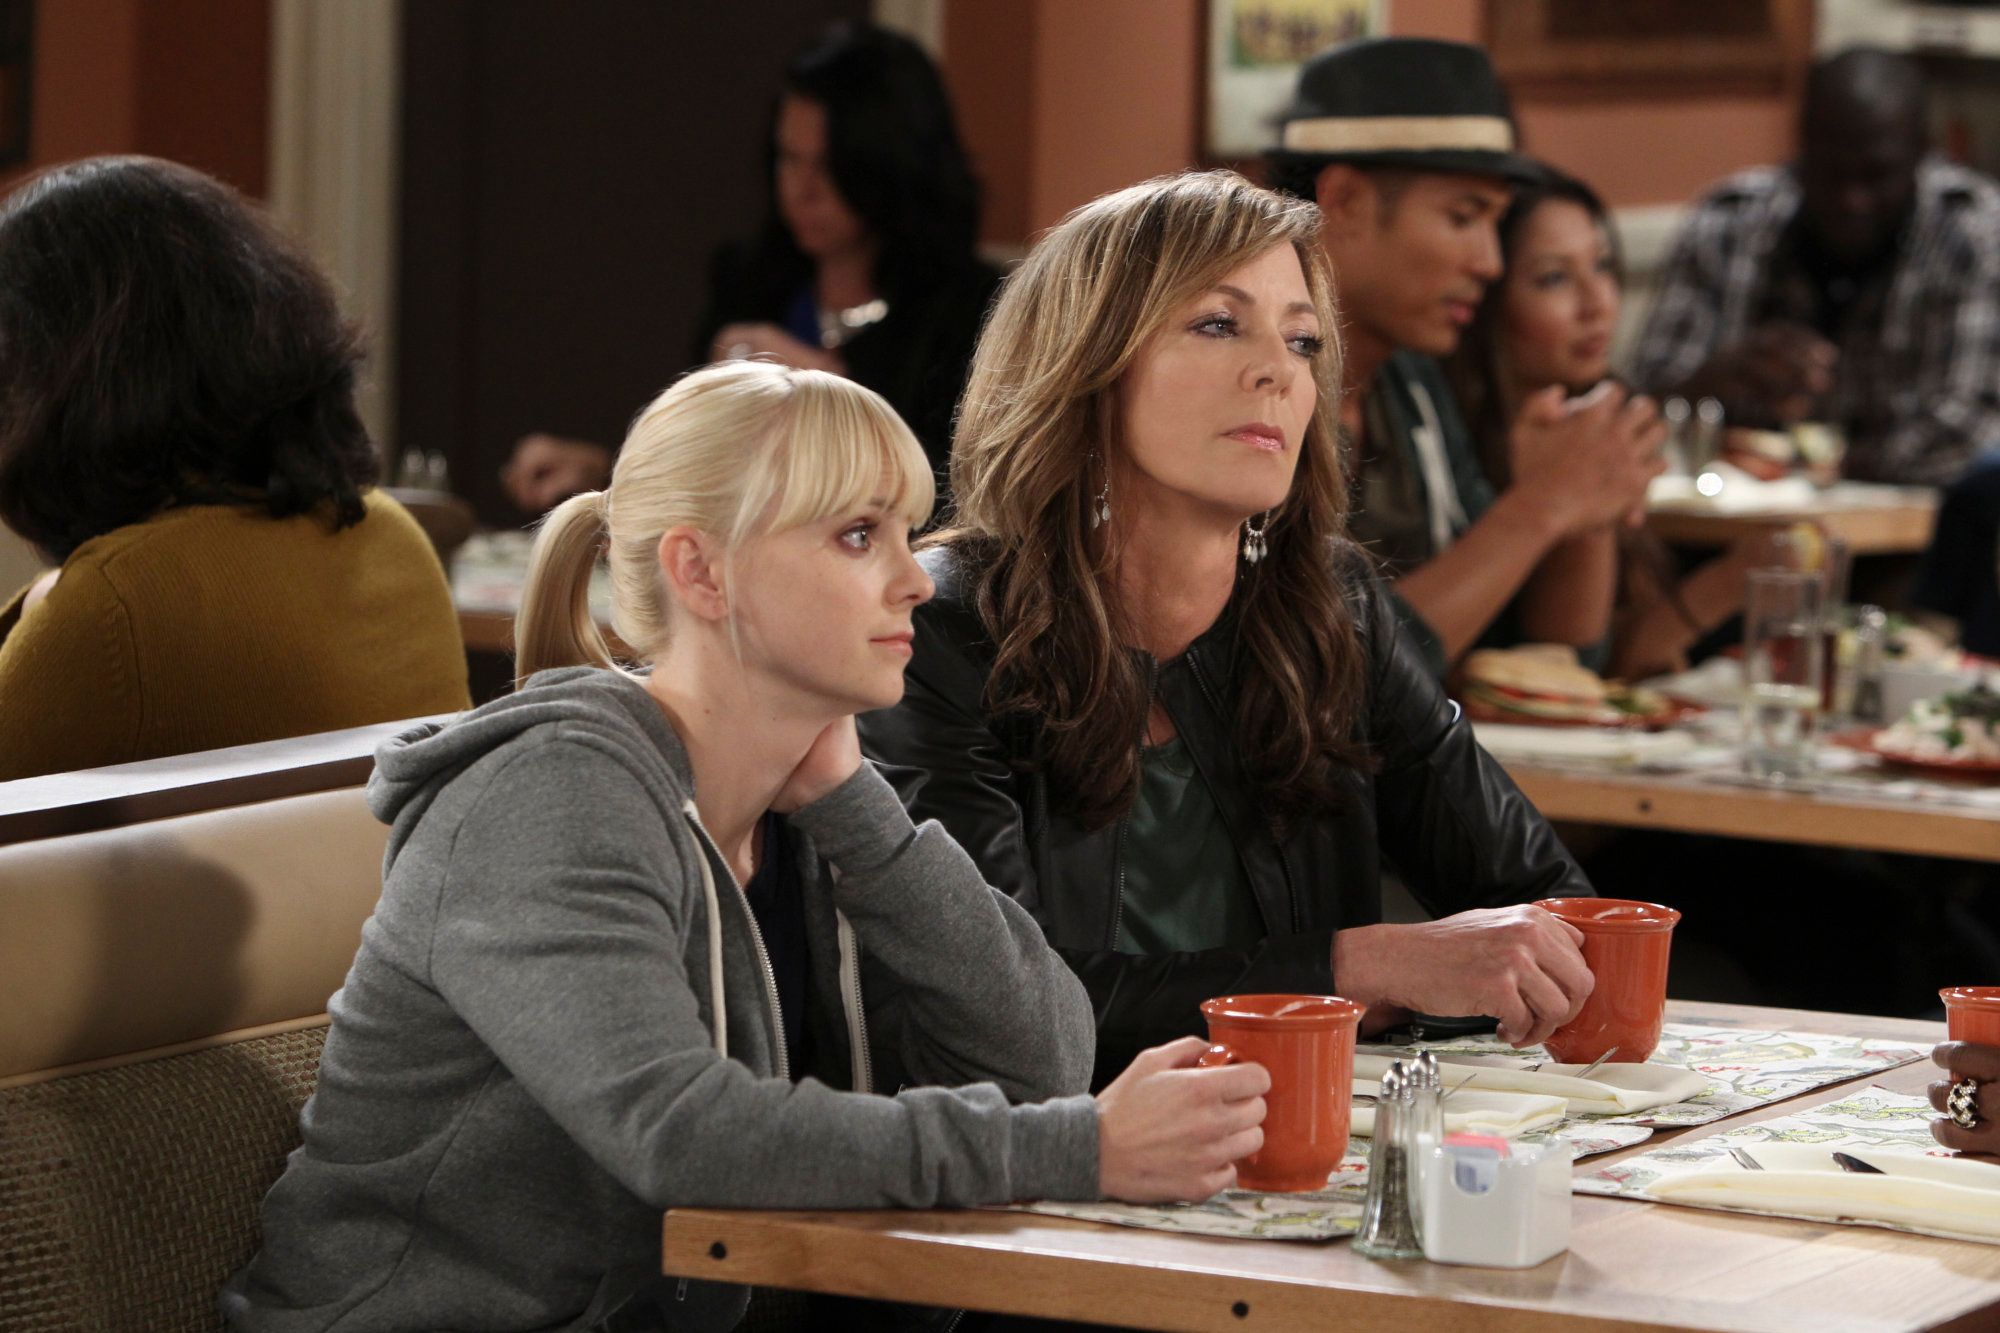 LOS ANGELES - AUGUST 30: 'Six Thousand Bootleg T-Shirts and a Prada Handbag'- Christy (Anna Faris, left) and Bonnie (Allison Janney, right) meet a woman with bigger issues than them, on MOM, Monday, October 21 (9:30-10:00 PM, ET/PT) on the CBS Television Network. (Photo by Monty Brinton/CBS via Getty Images)